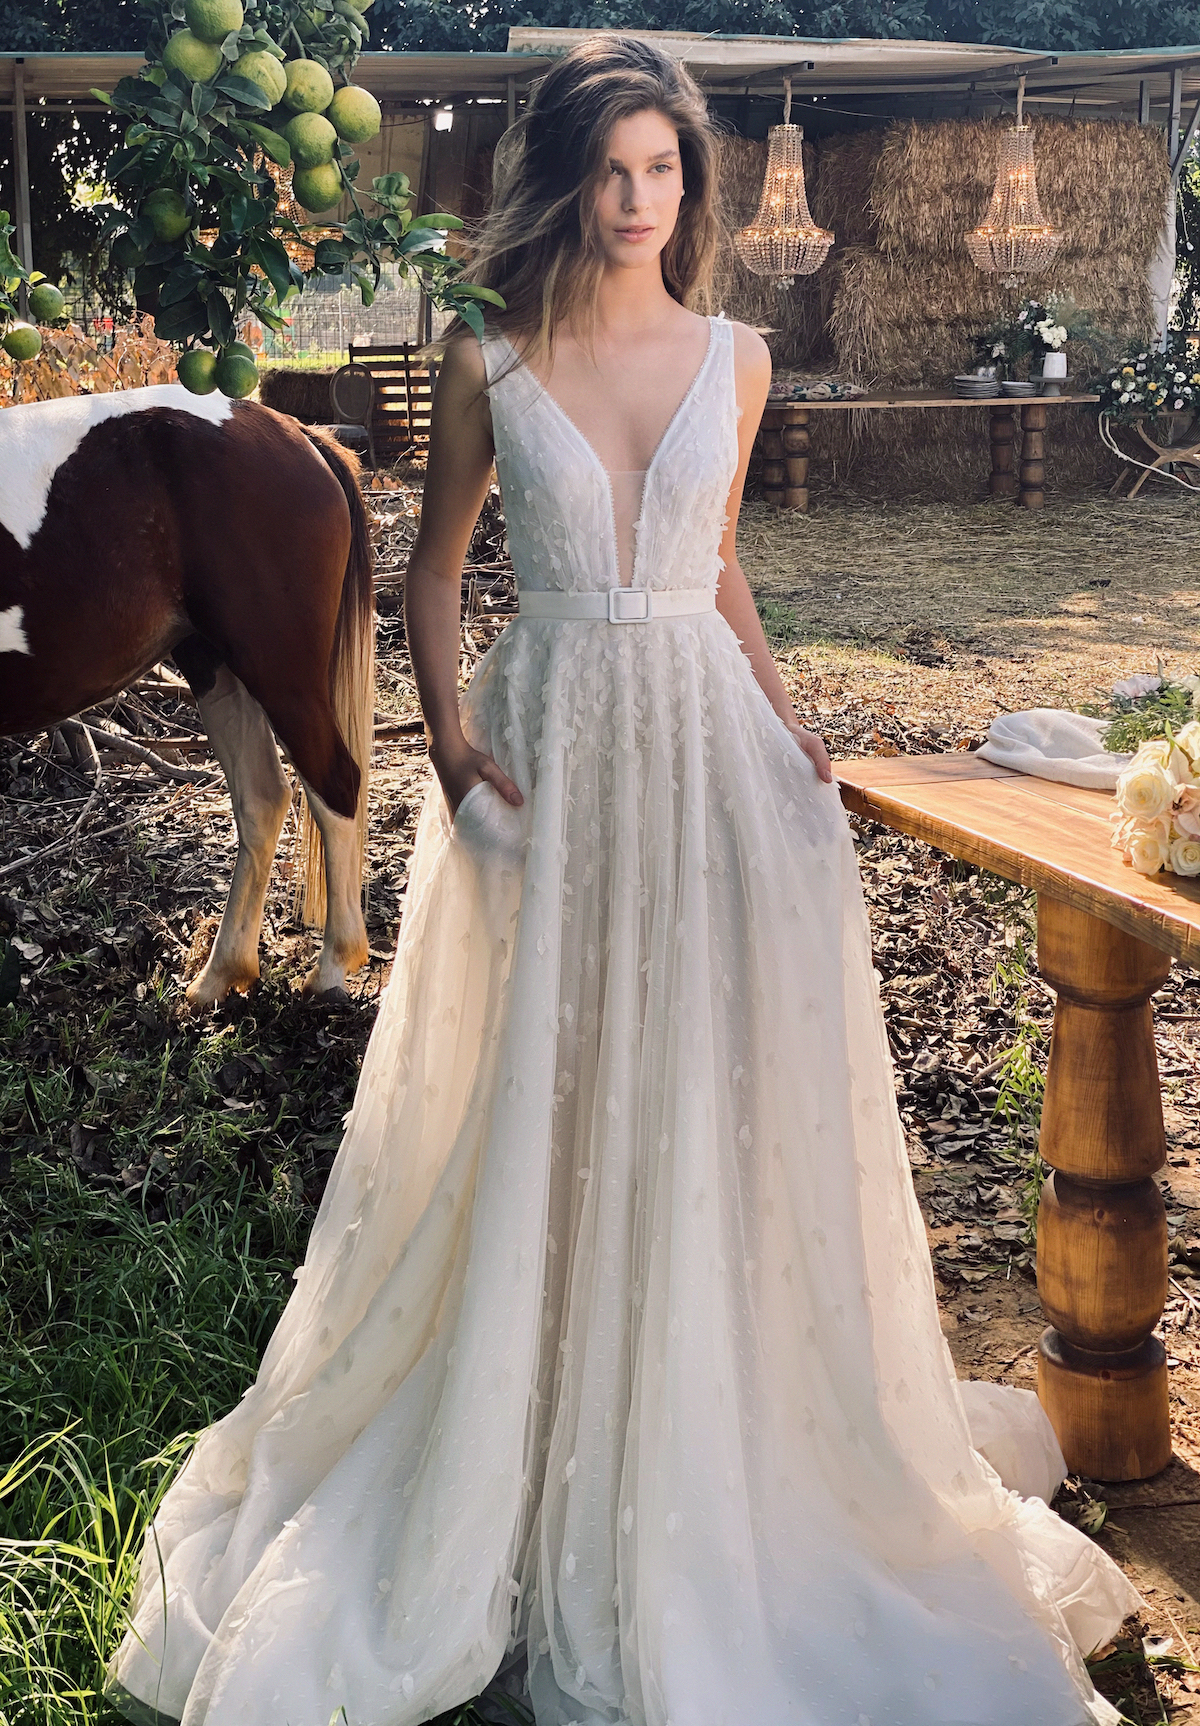 Floral beaded bridal gown with v-neck and a-line skirt